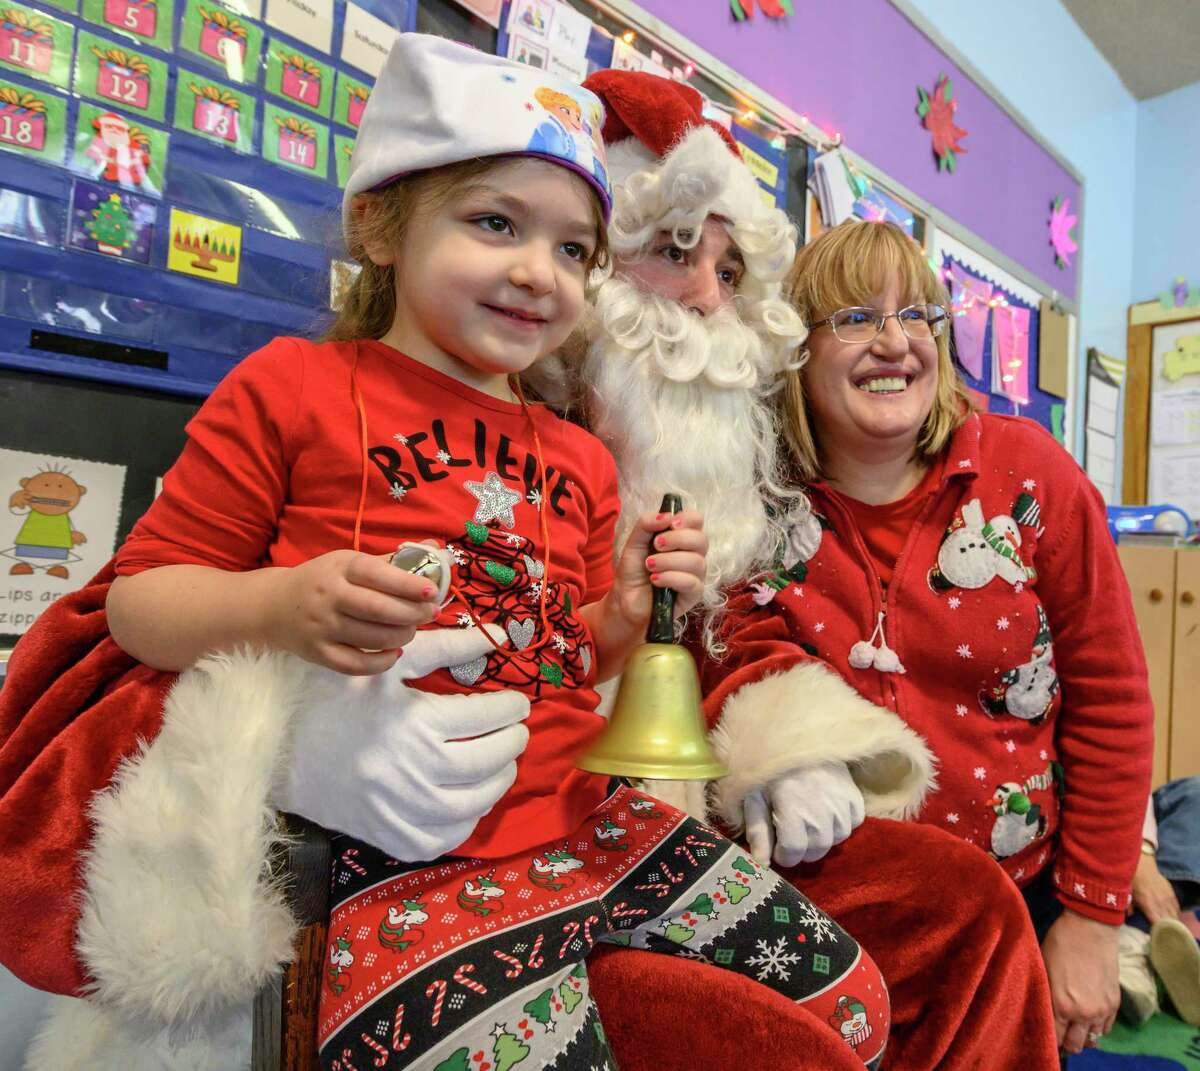 Santa a.k.a Rafael Levy-Lesko has a photo op with student Zoe Nash, left and her mom Sue Hash, right, as he makes a visit to teacher Jami Sousis' Pre School Class at A Child's Place, Unity House Wednesday Dec. 18, 2018 in Troyi, N.Y. (Skip Dickstein/Times Union)